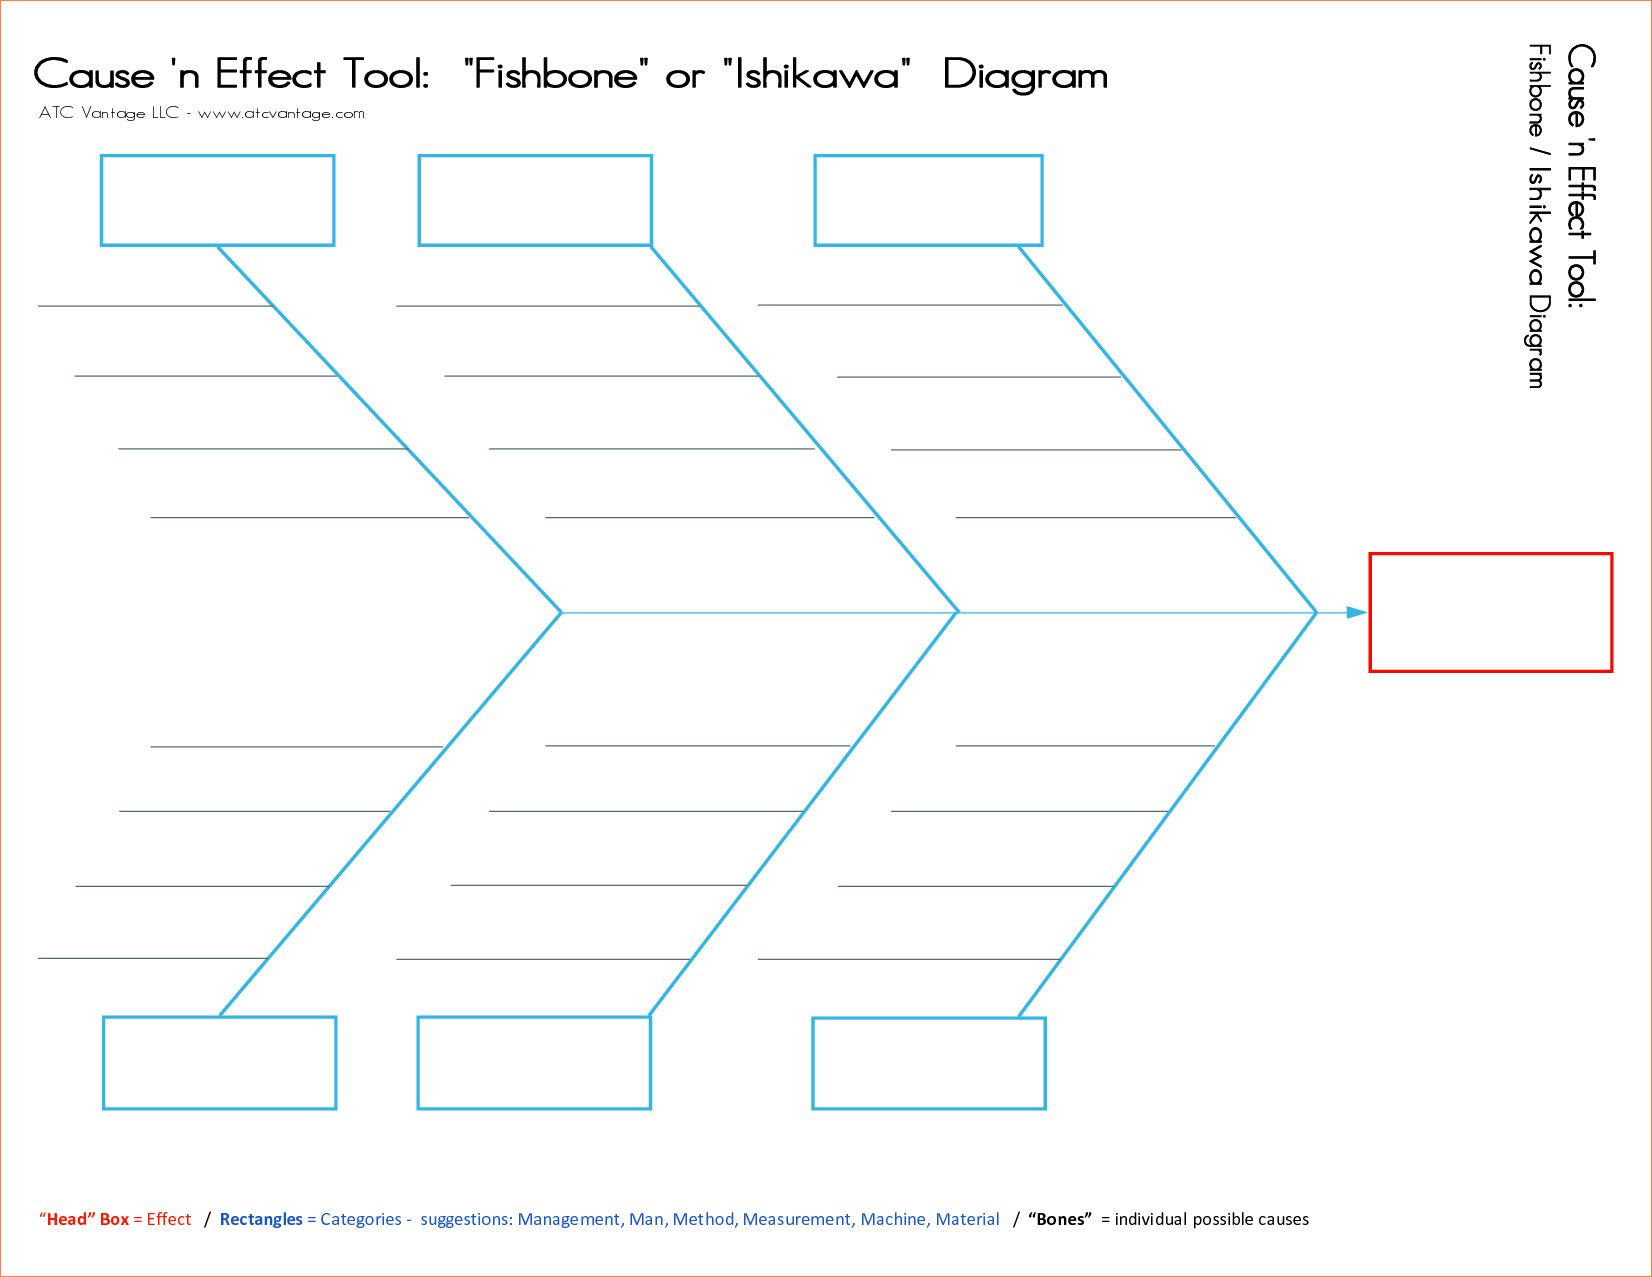 029 Blank Fishbone Diagram Template Word Of Unforgettable With Regard To Blank Fishbone Diagram Template Word Best Template Ideas En 2020